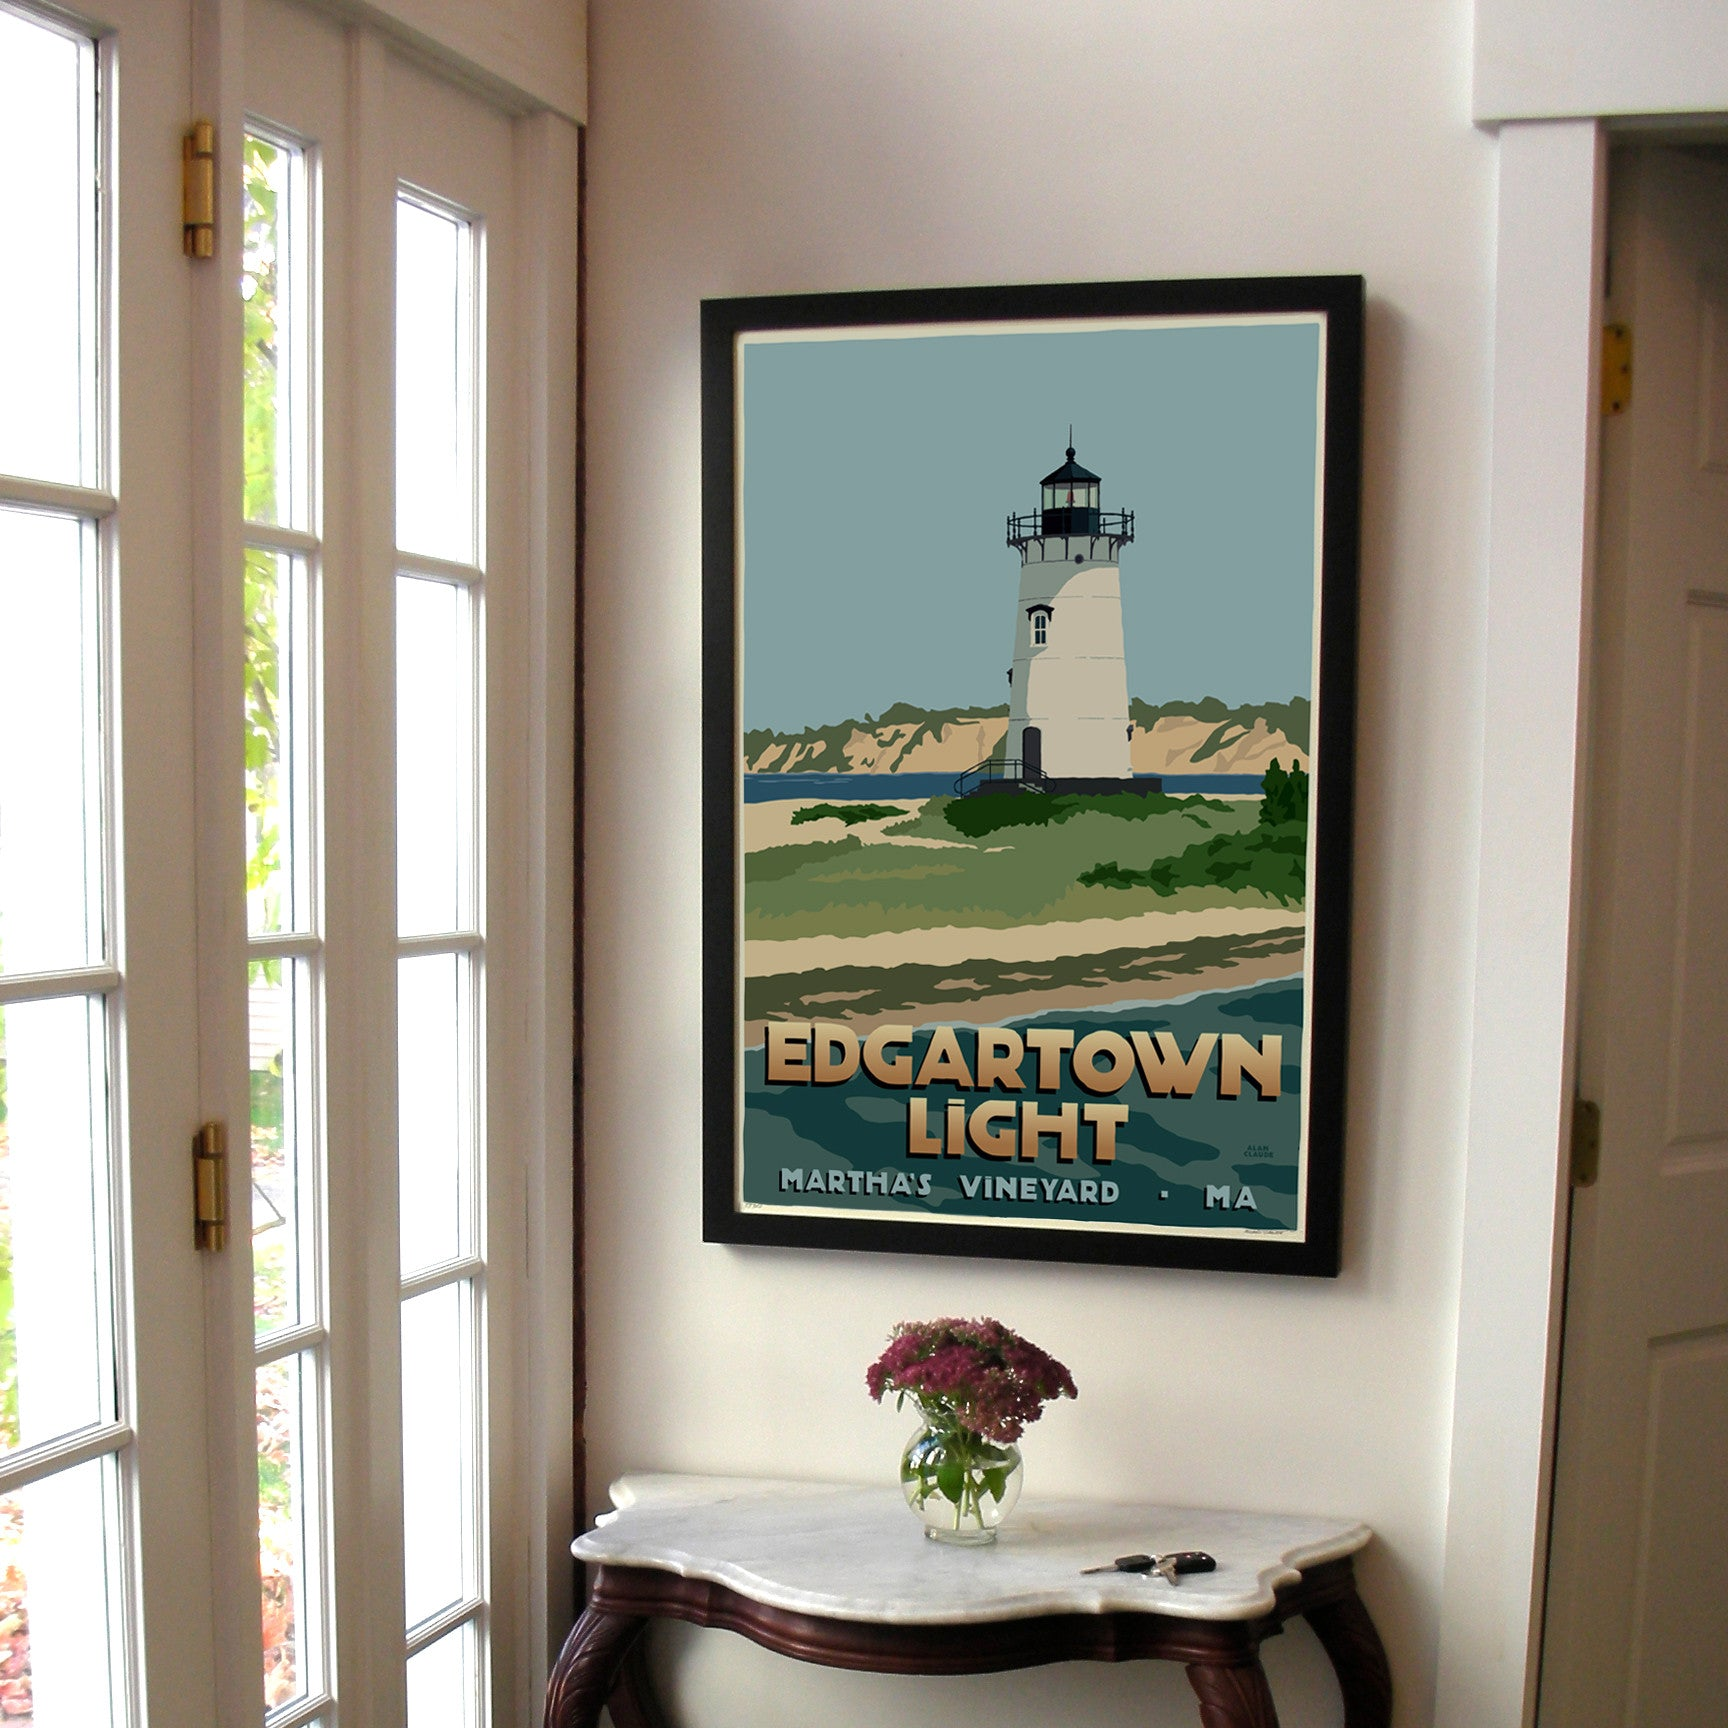 "Edgartown Light Art Print 24"" x 36"" Framed Travel Poster - Massachusetts"